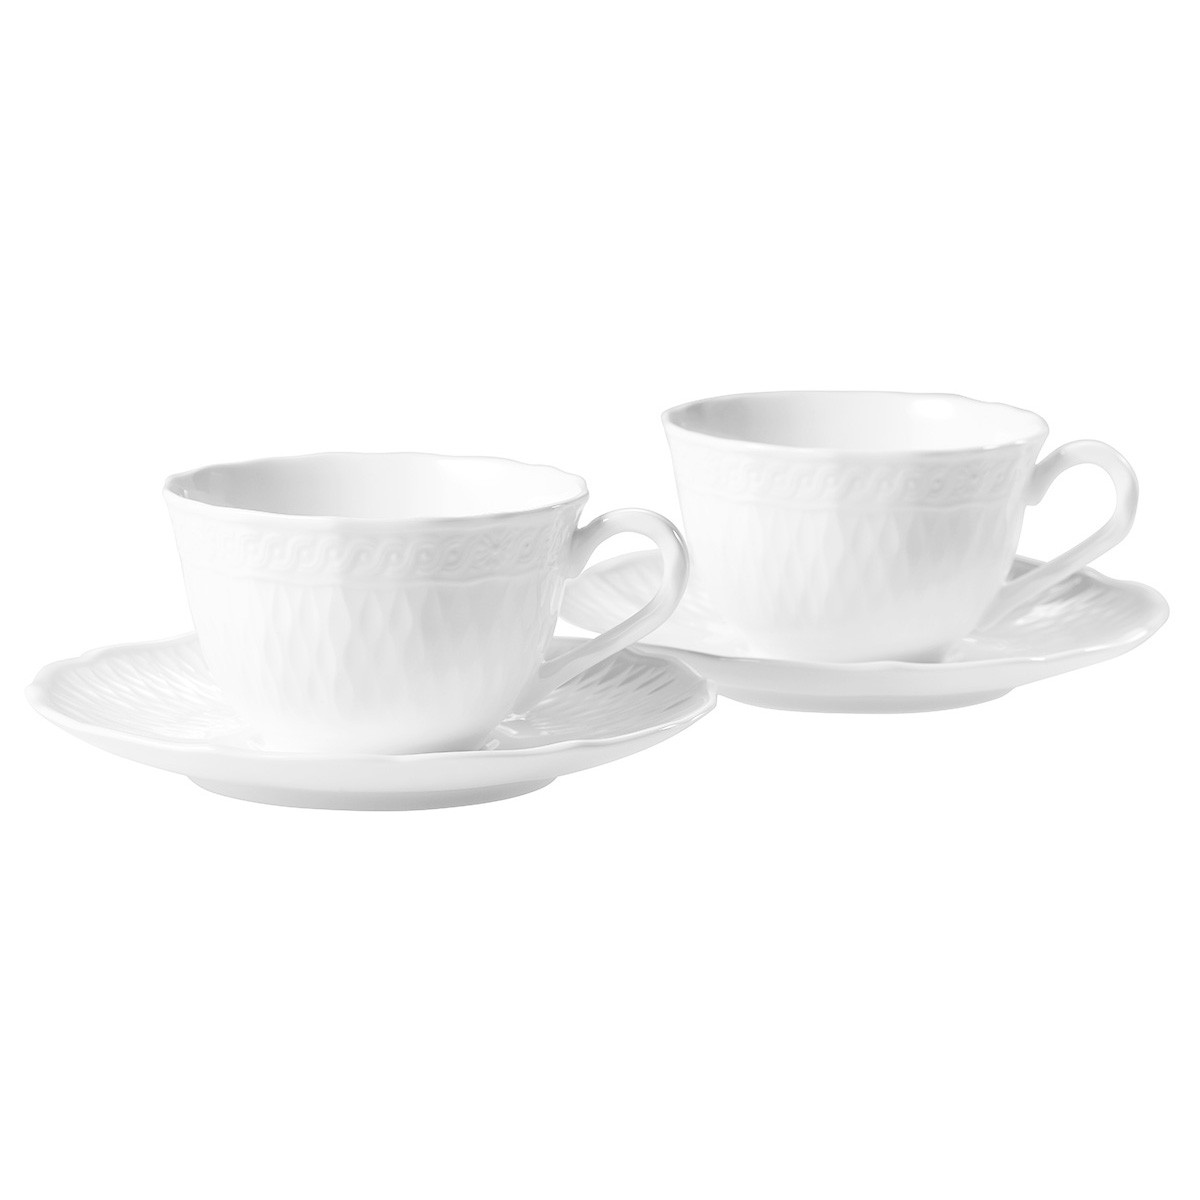 Noritake Cher Blanc Fine China Cup & Saucer Set